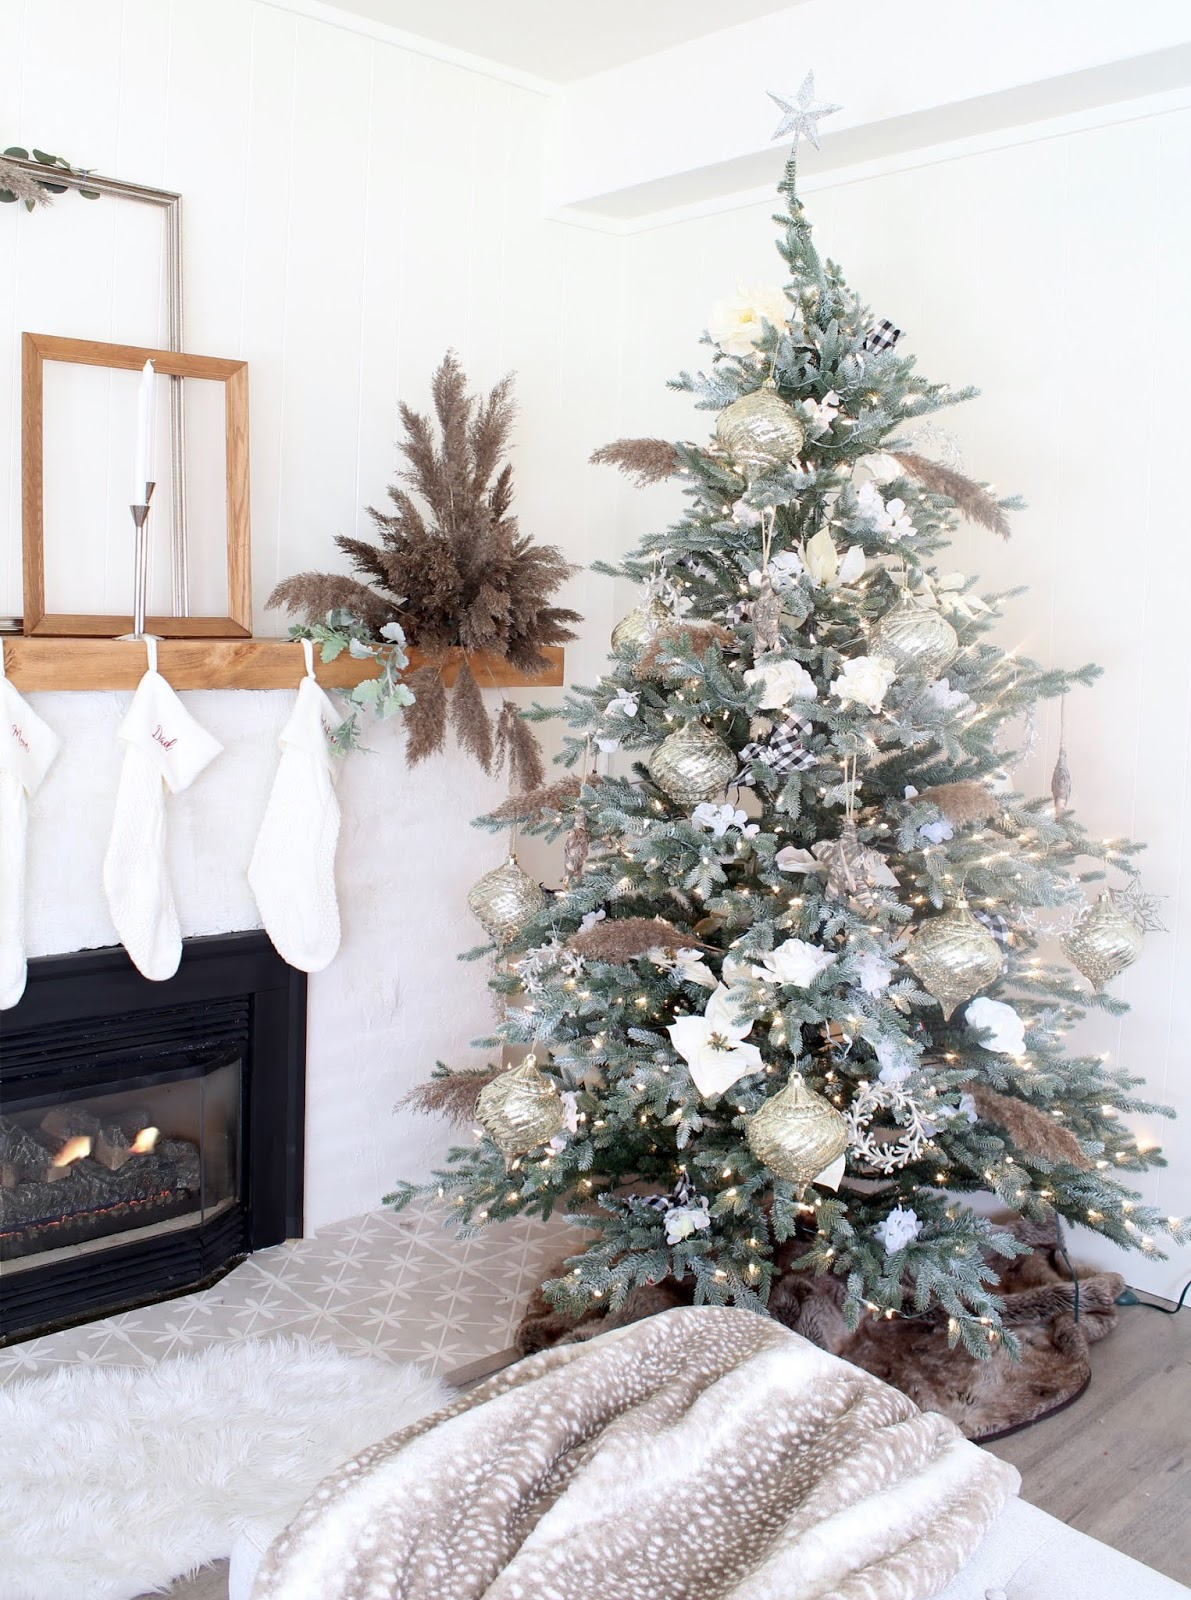 nordic-christmas-decorating-ideas-pampas-grass-diy-wedding-holiday-decor-5